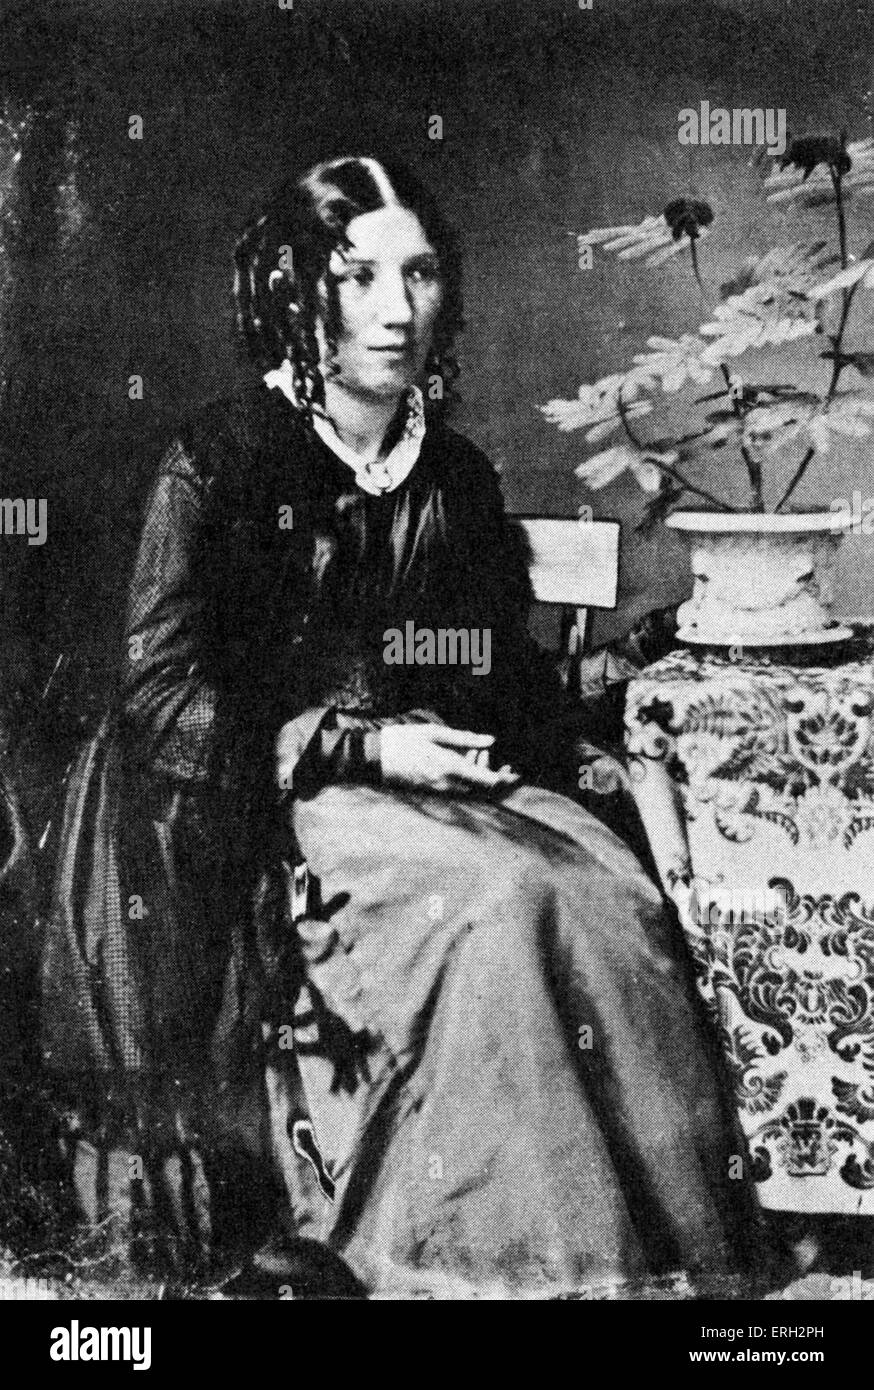 Harriet Beecher Stowe c. 1852, American author and abolitionist. 14 June 1811 – 1 July 1896. - Stock Image